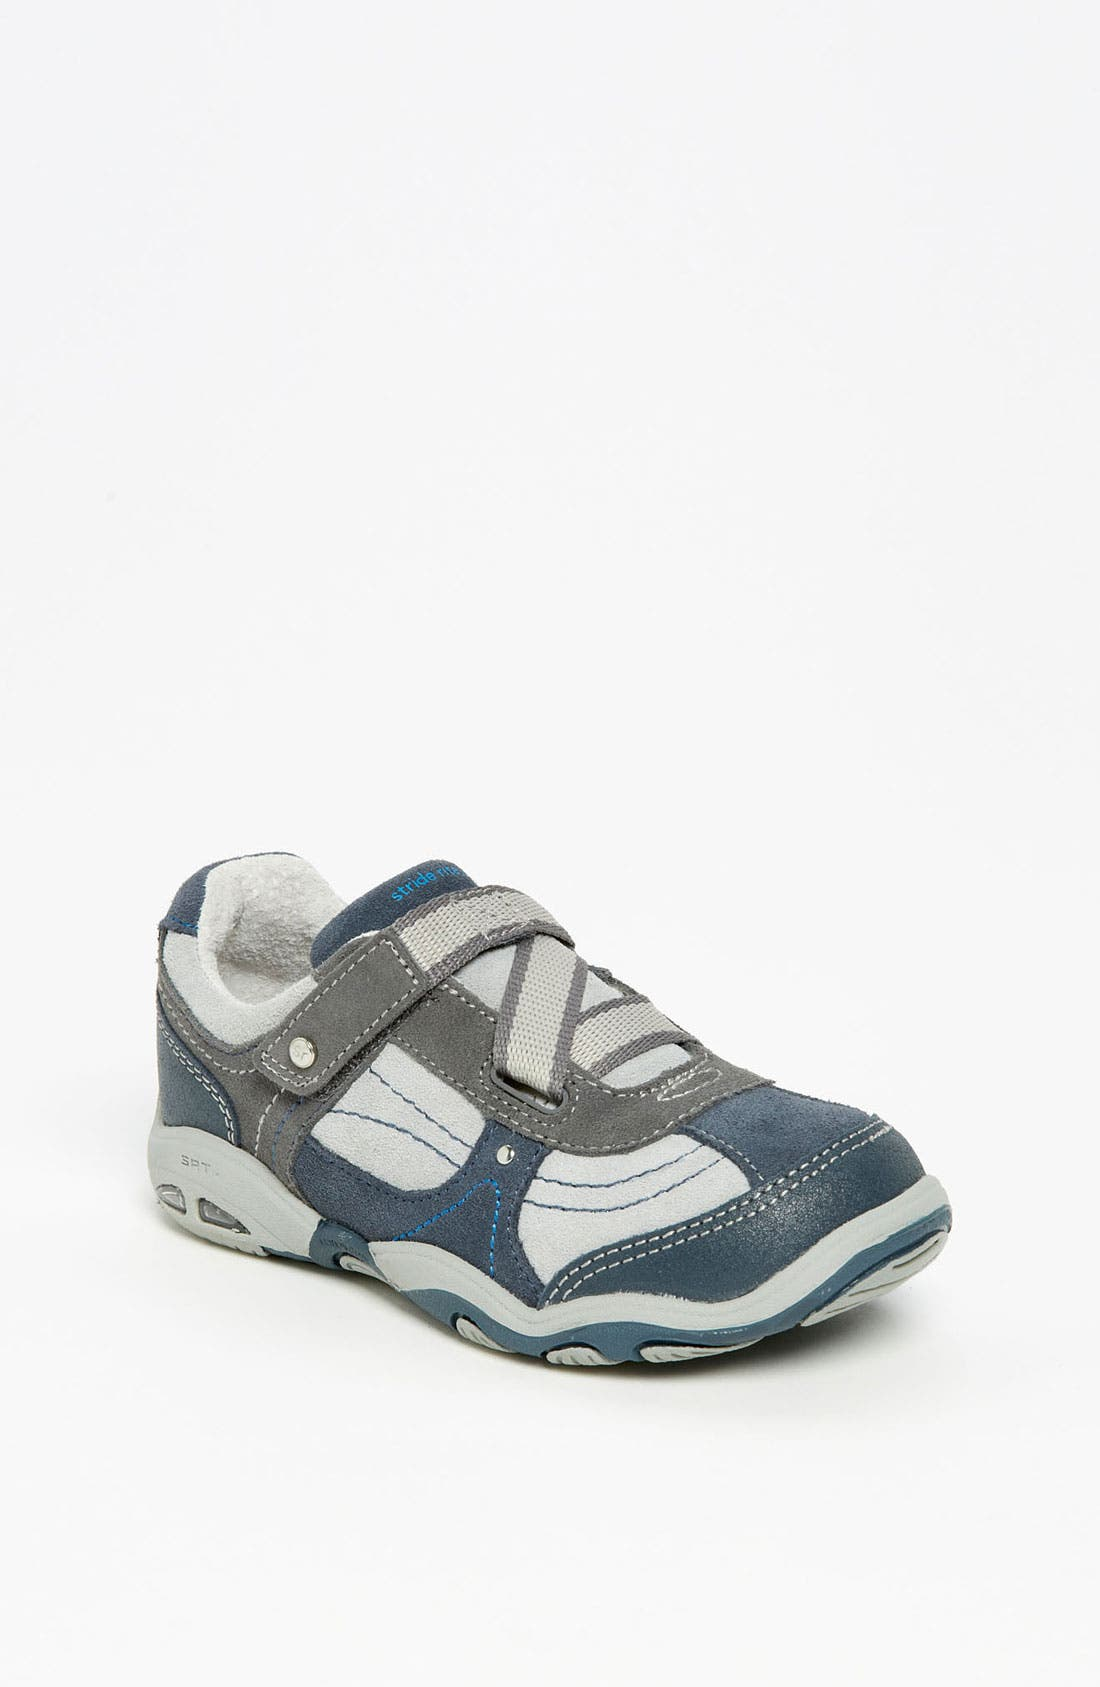 Alternate Image 1 Selected - Stride Rite 'Chad' Sneaker (Toddler & Little Kid)